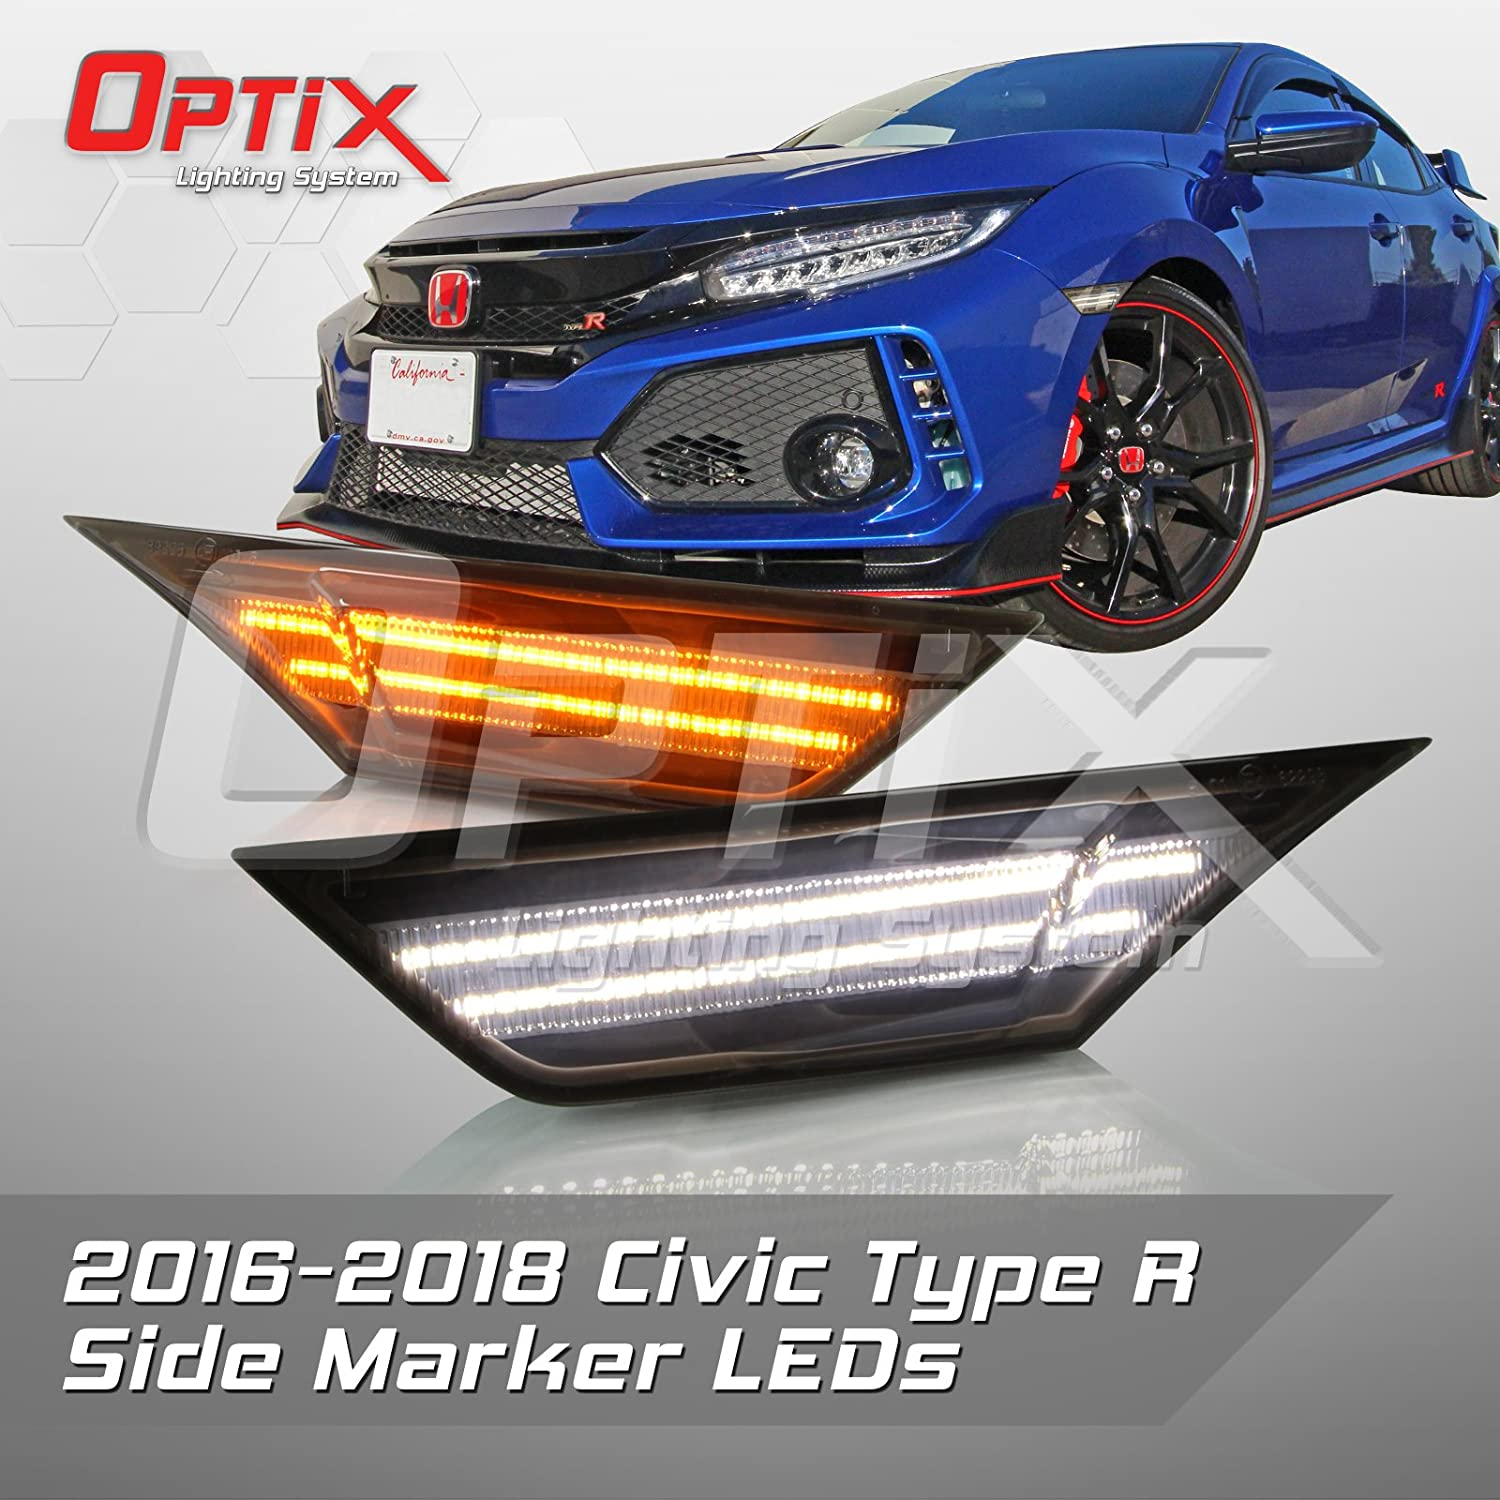 Optix 2016-2017 Honda Civic Type-R Smoked LED Front Side Marker Light - LED Turn Signal Housing Parking Light Replacement Lamp